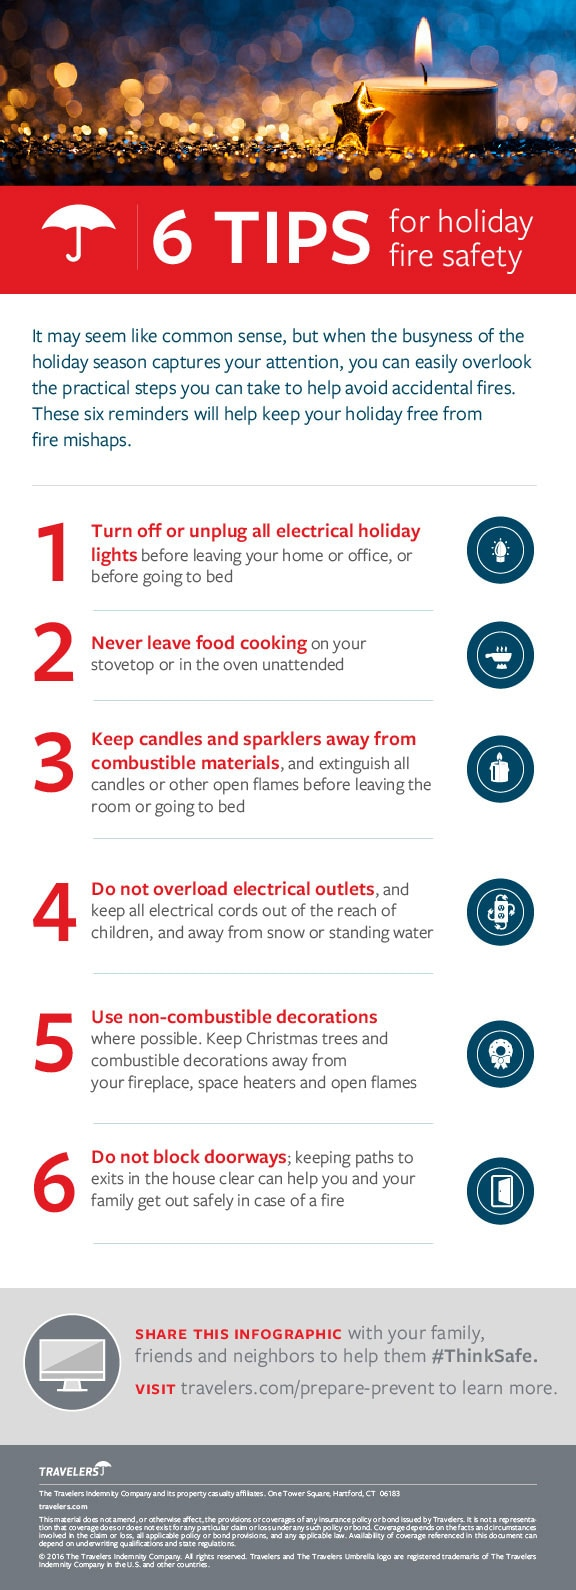 Holiday fire safety tips infographic